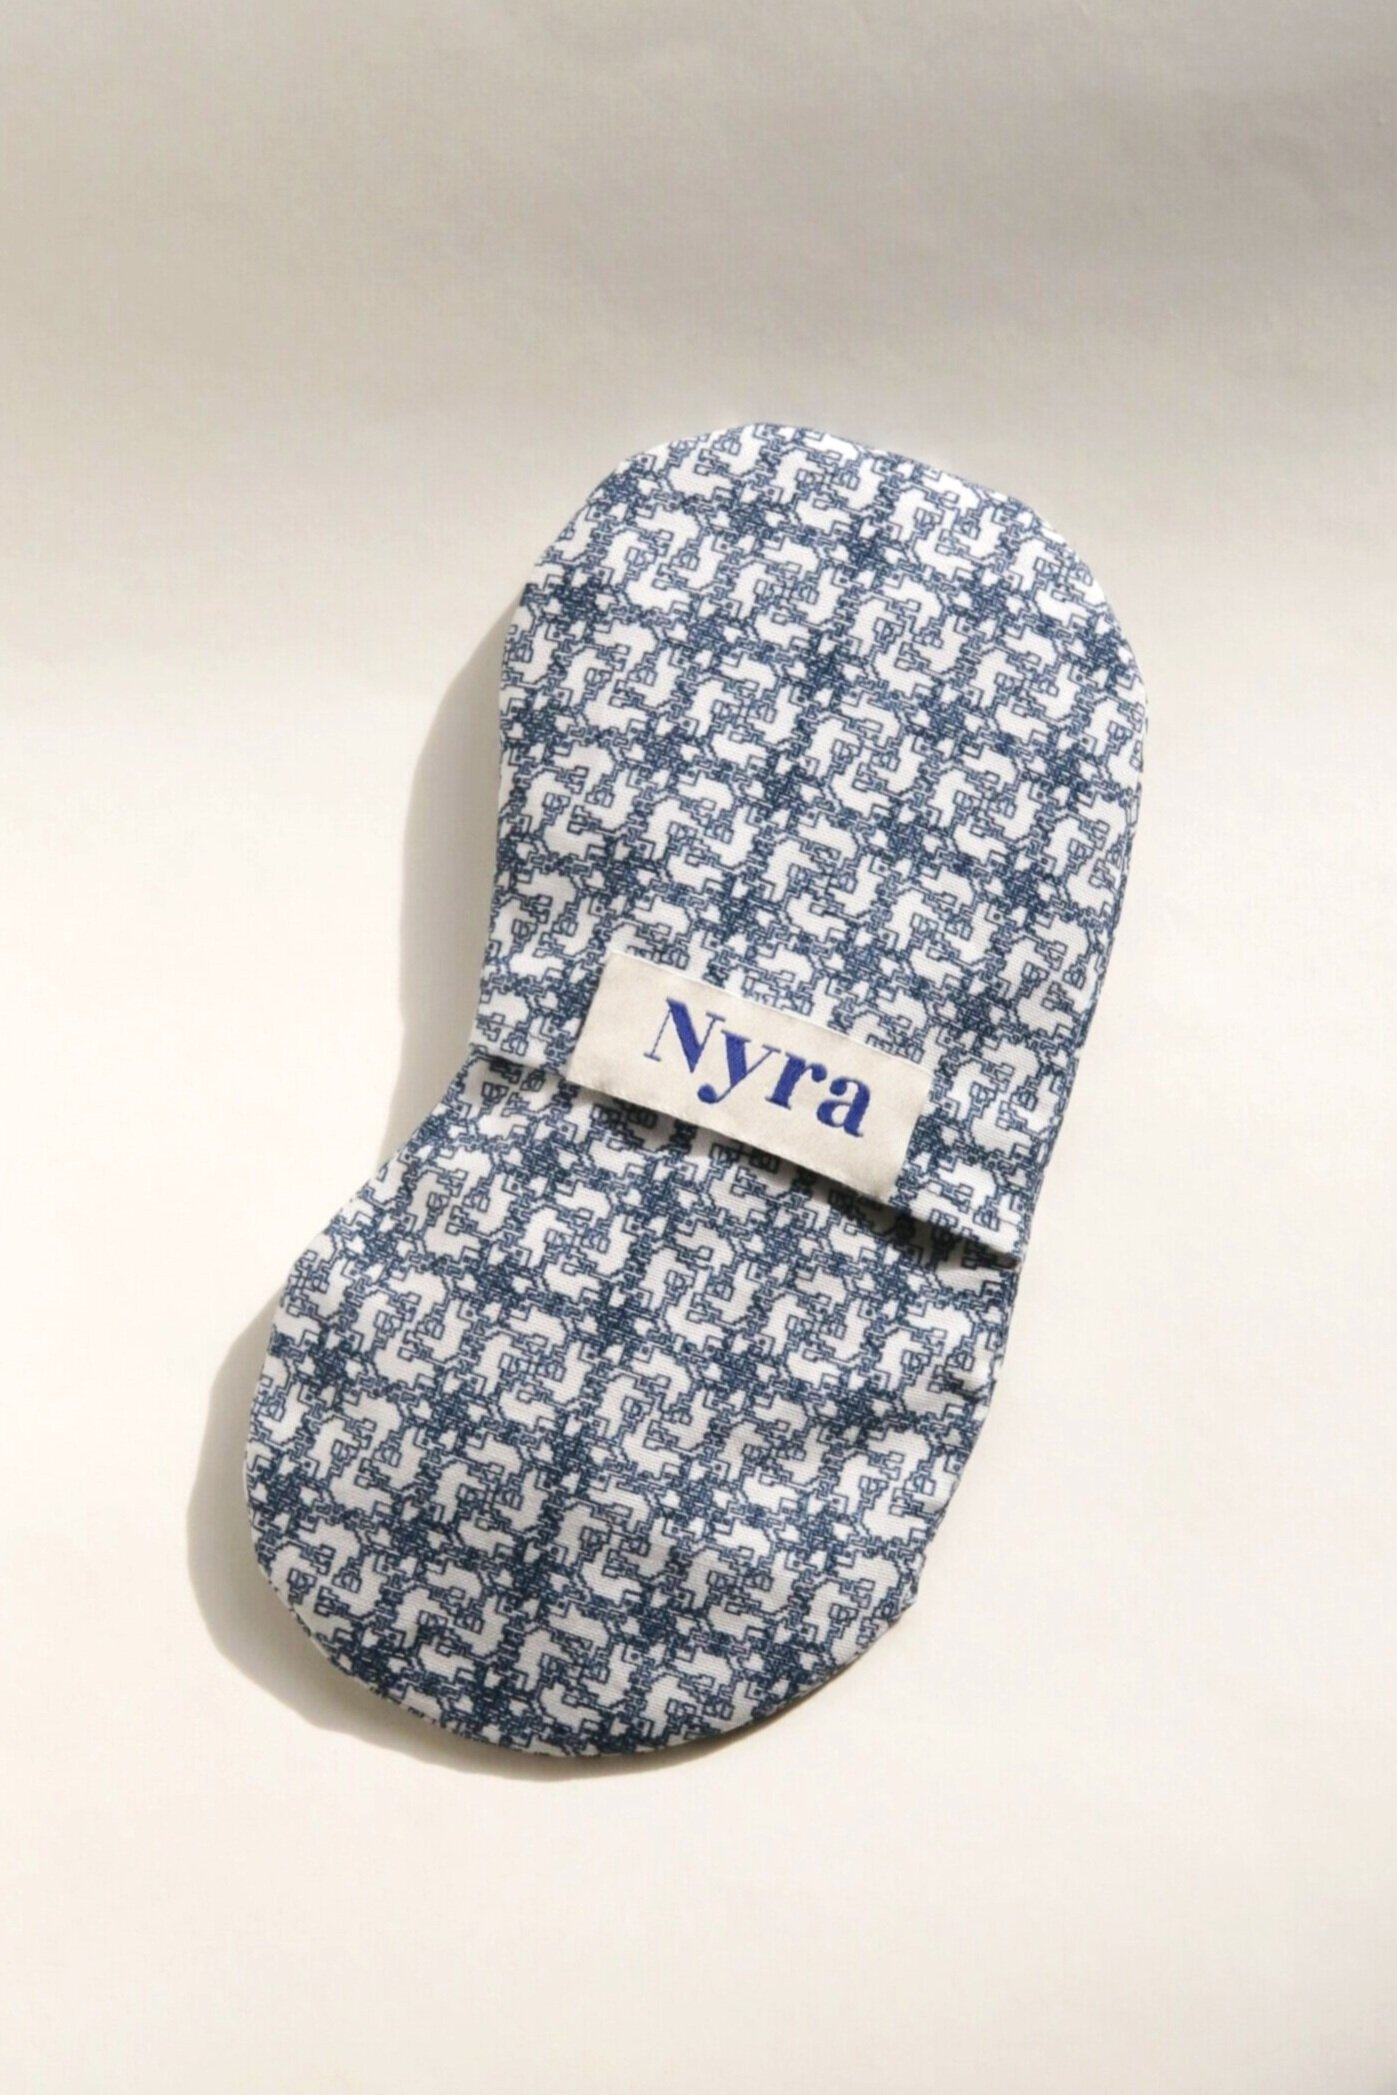 Snu Scent Eye Pillow Mask 02 from Nyra